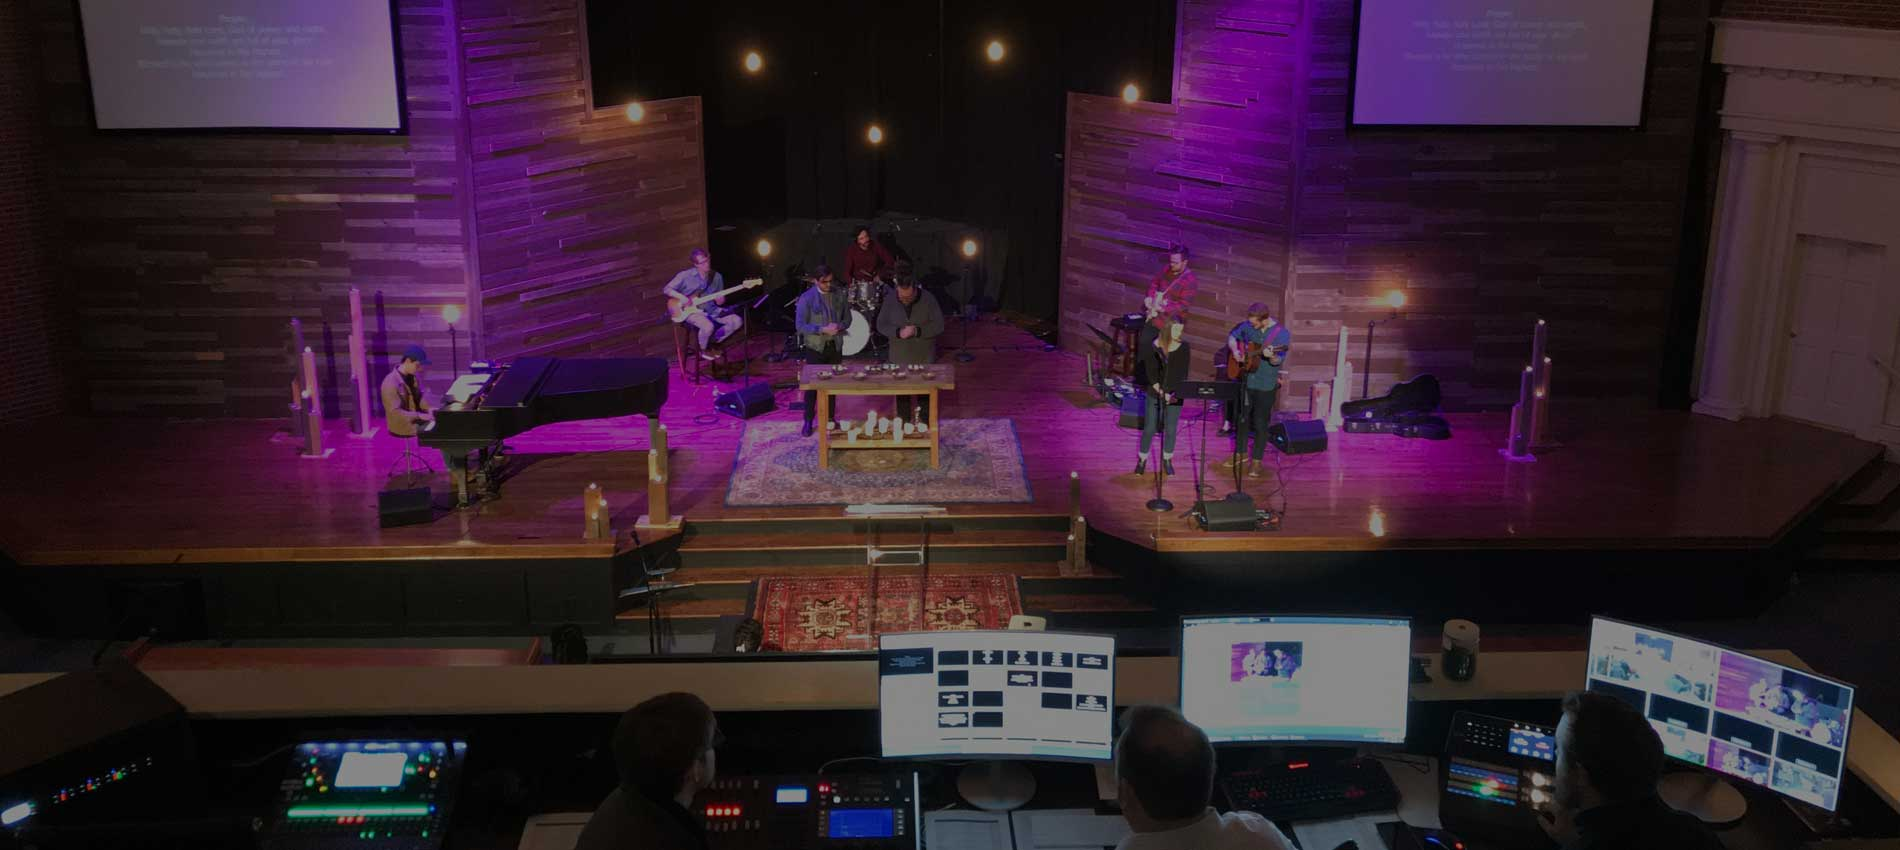 Audio Visual Production Systems for Churches Oklahoma City Edmond Tulsa